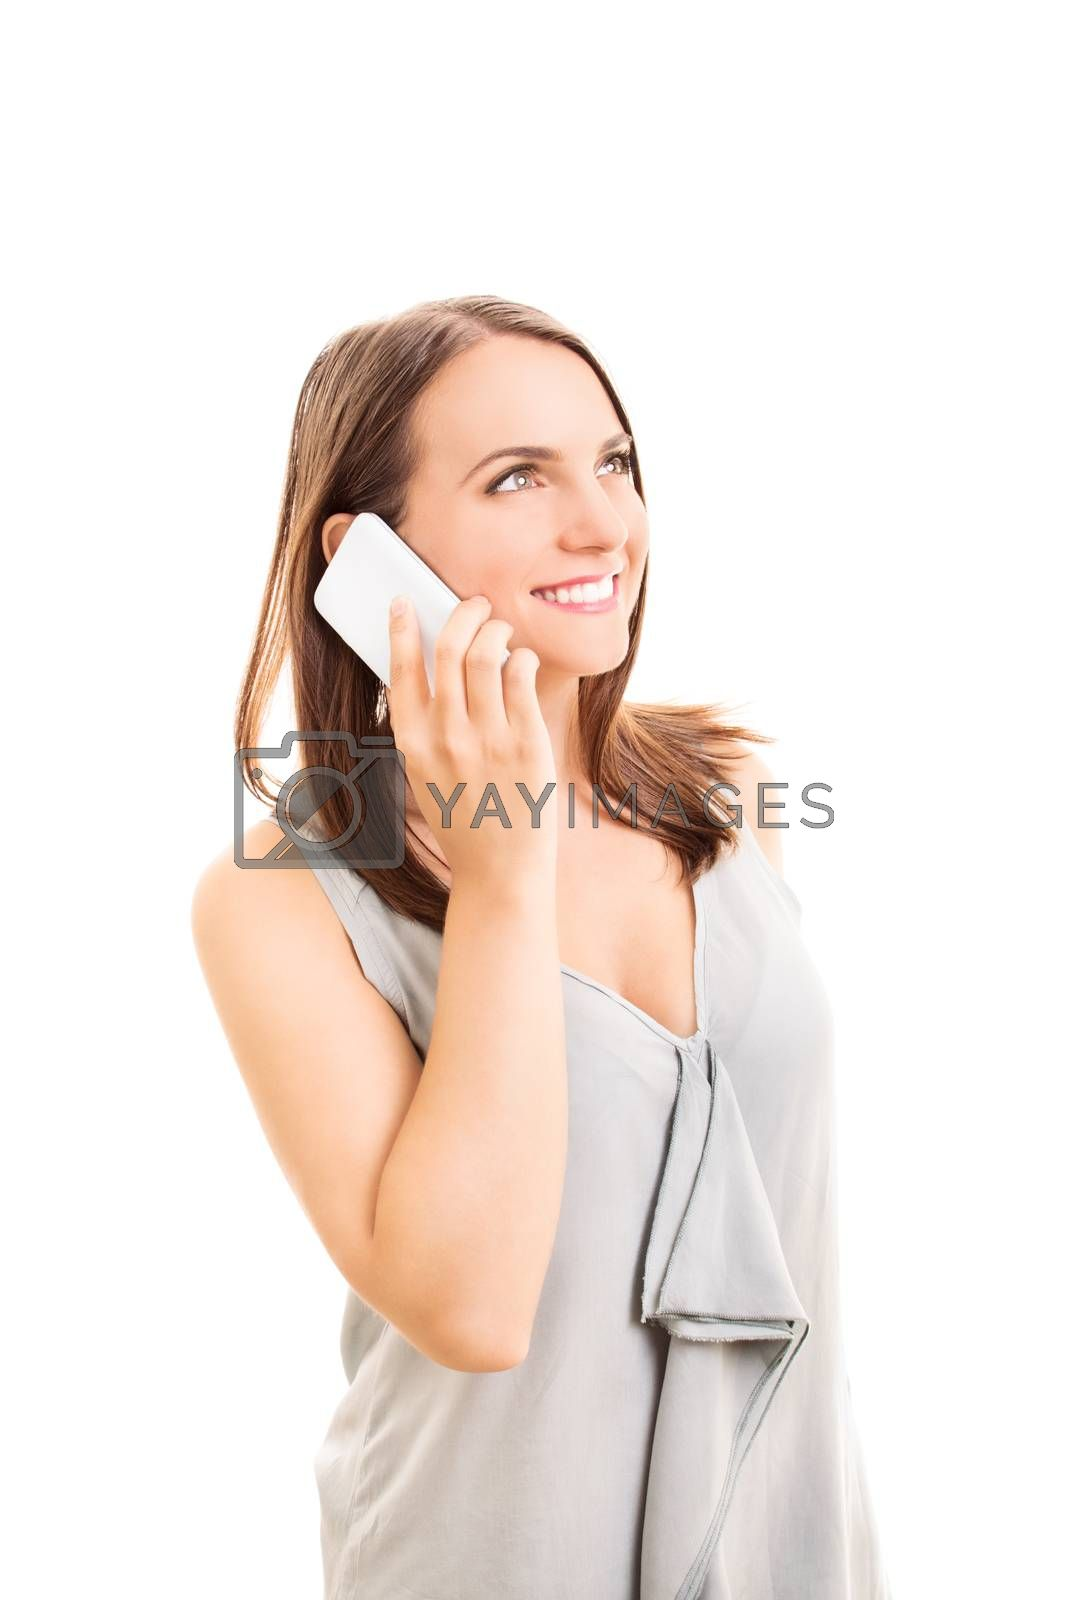 Smiling beautiful young woman talking on a phone, isolated on white background.